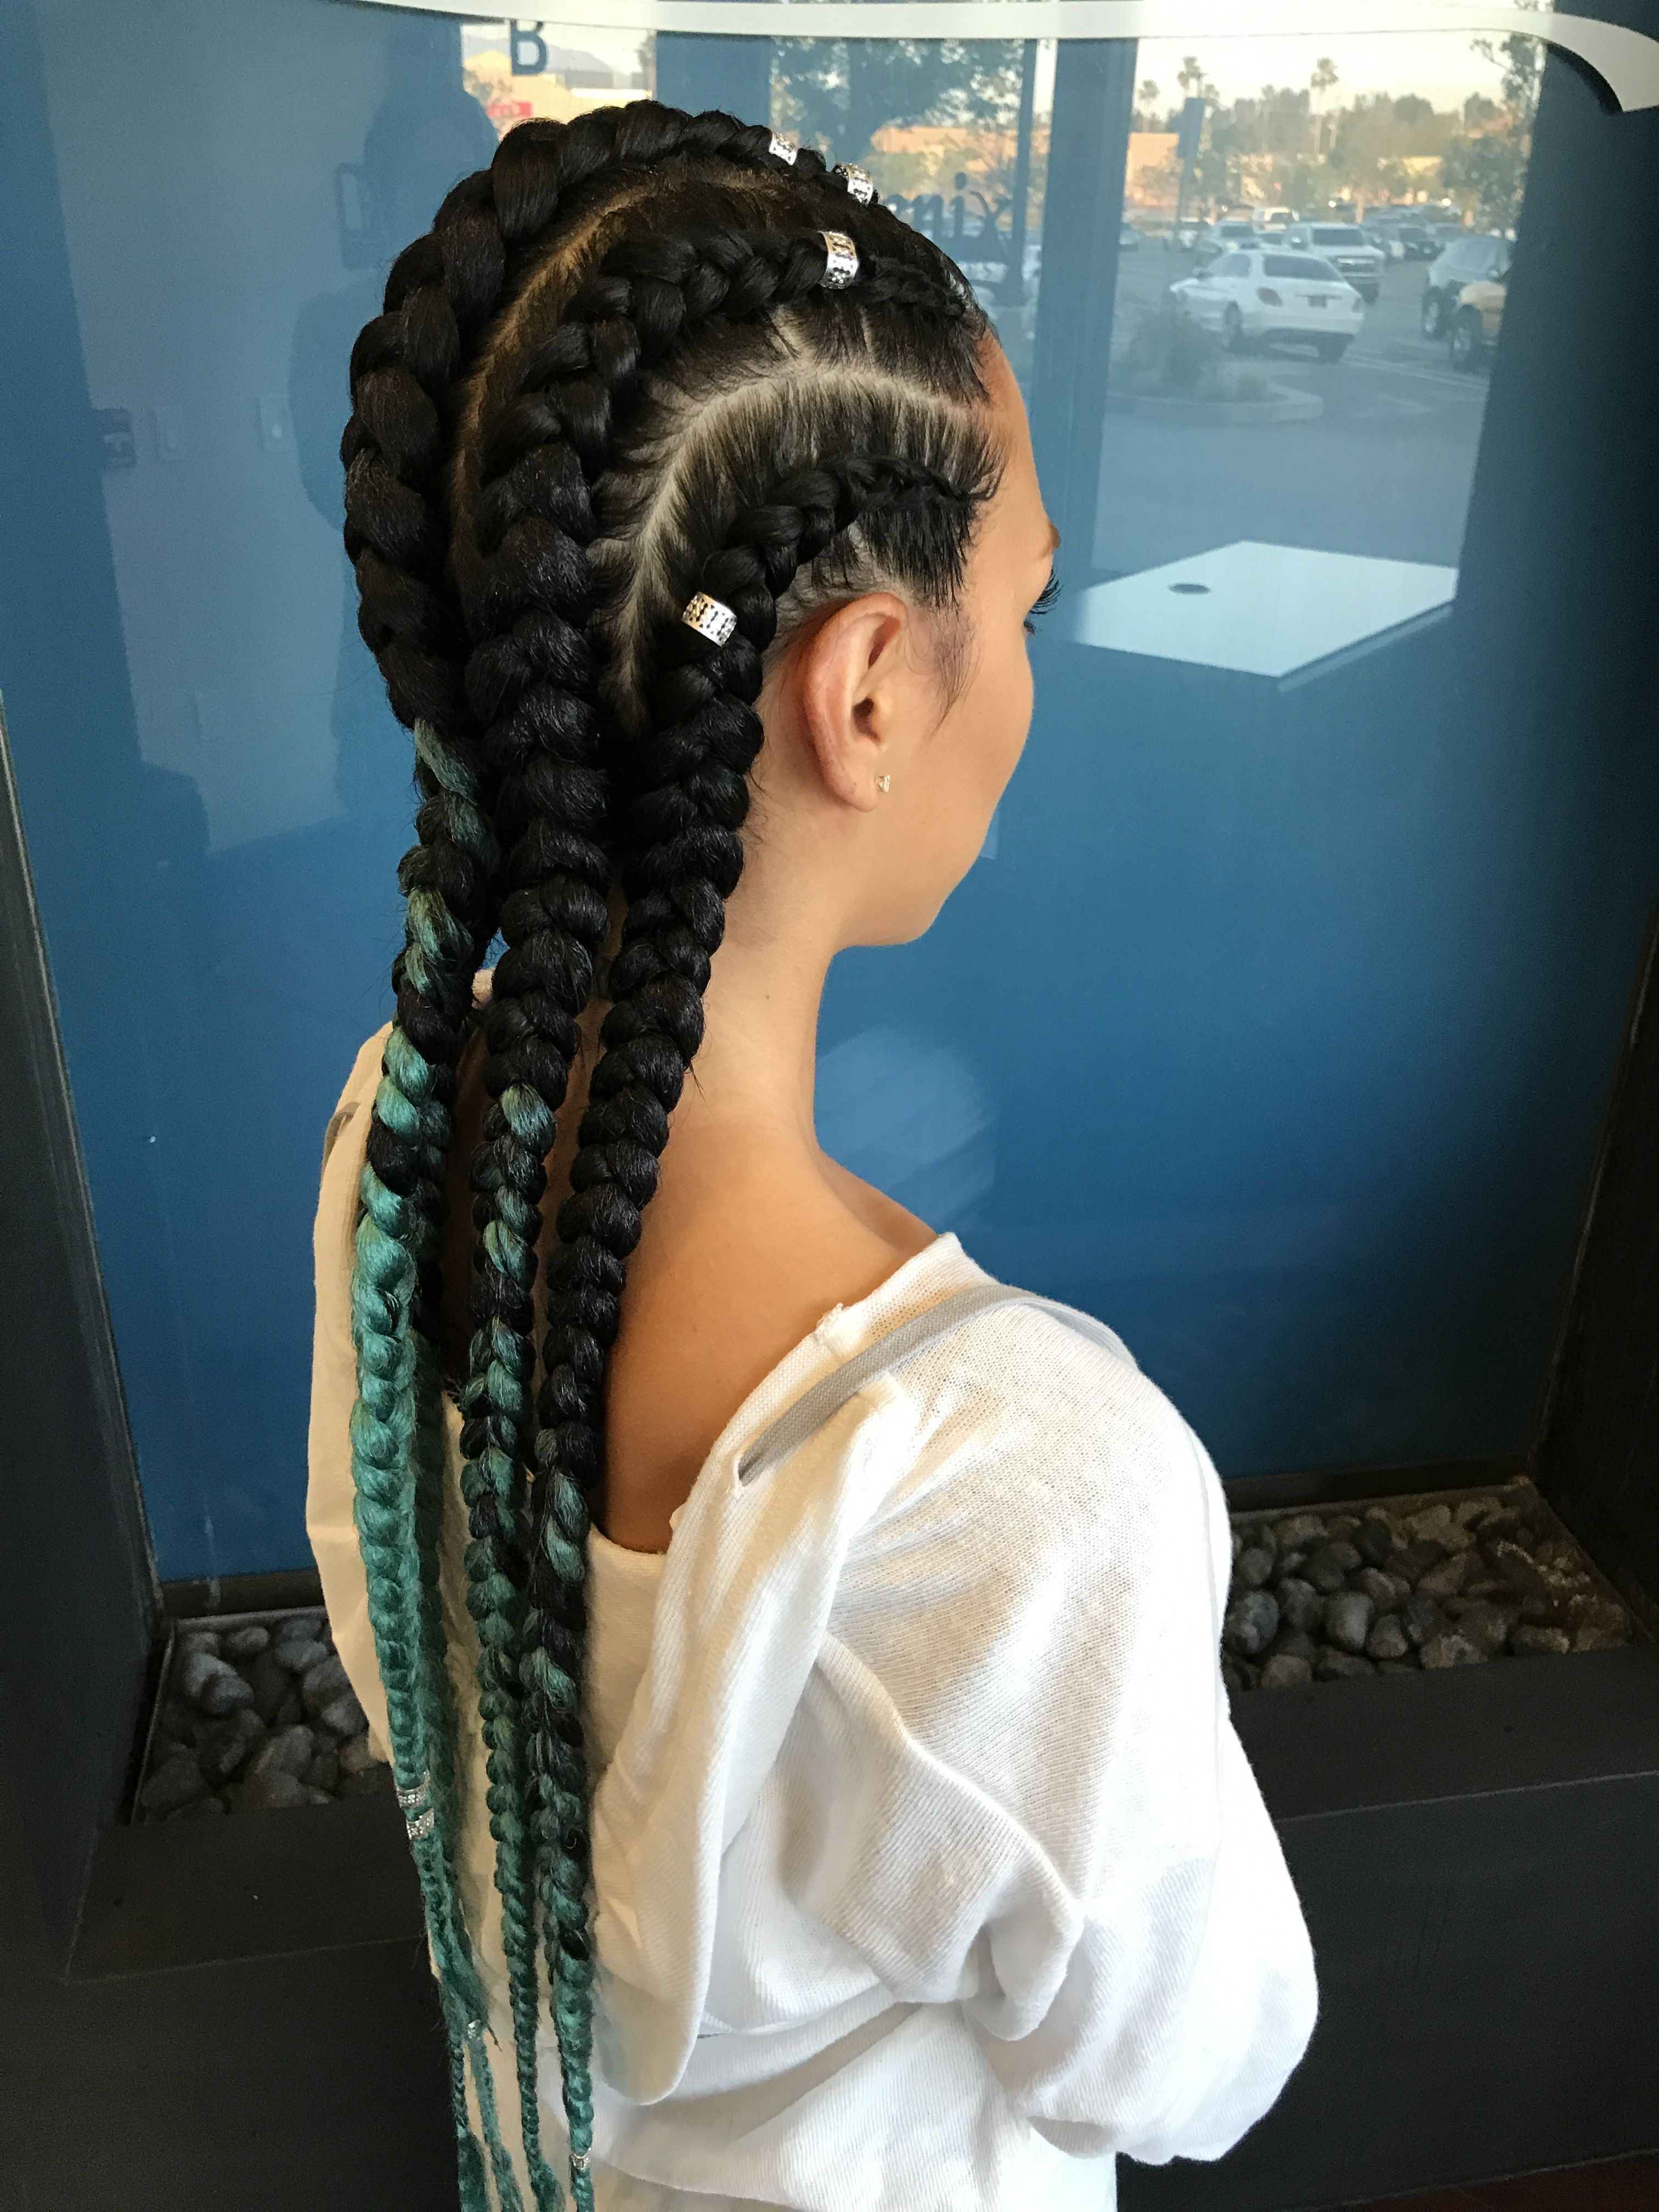 How To Do Cornrow Braids - Learn How To To This Simple Braiding ... How To Do Cornrow Braids - Learn how to to this simple braiding  Visit my website for more tips and tutorials on black hair care, skin care, Want to learn how to do cornrow braids? Look closely and watch my hands as they move  cornrow hairstyles  with bangs | half cornrow hairstyles | cornrow hairstyles  braids | unique cornrow hairstyles | cornrow hairstyles  with beads #cornrow #hairstyles #tutorial #cornrowhairstyles # feed